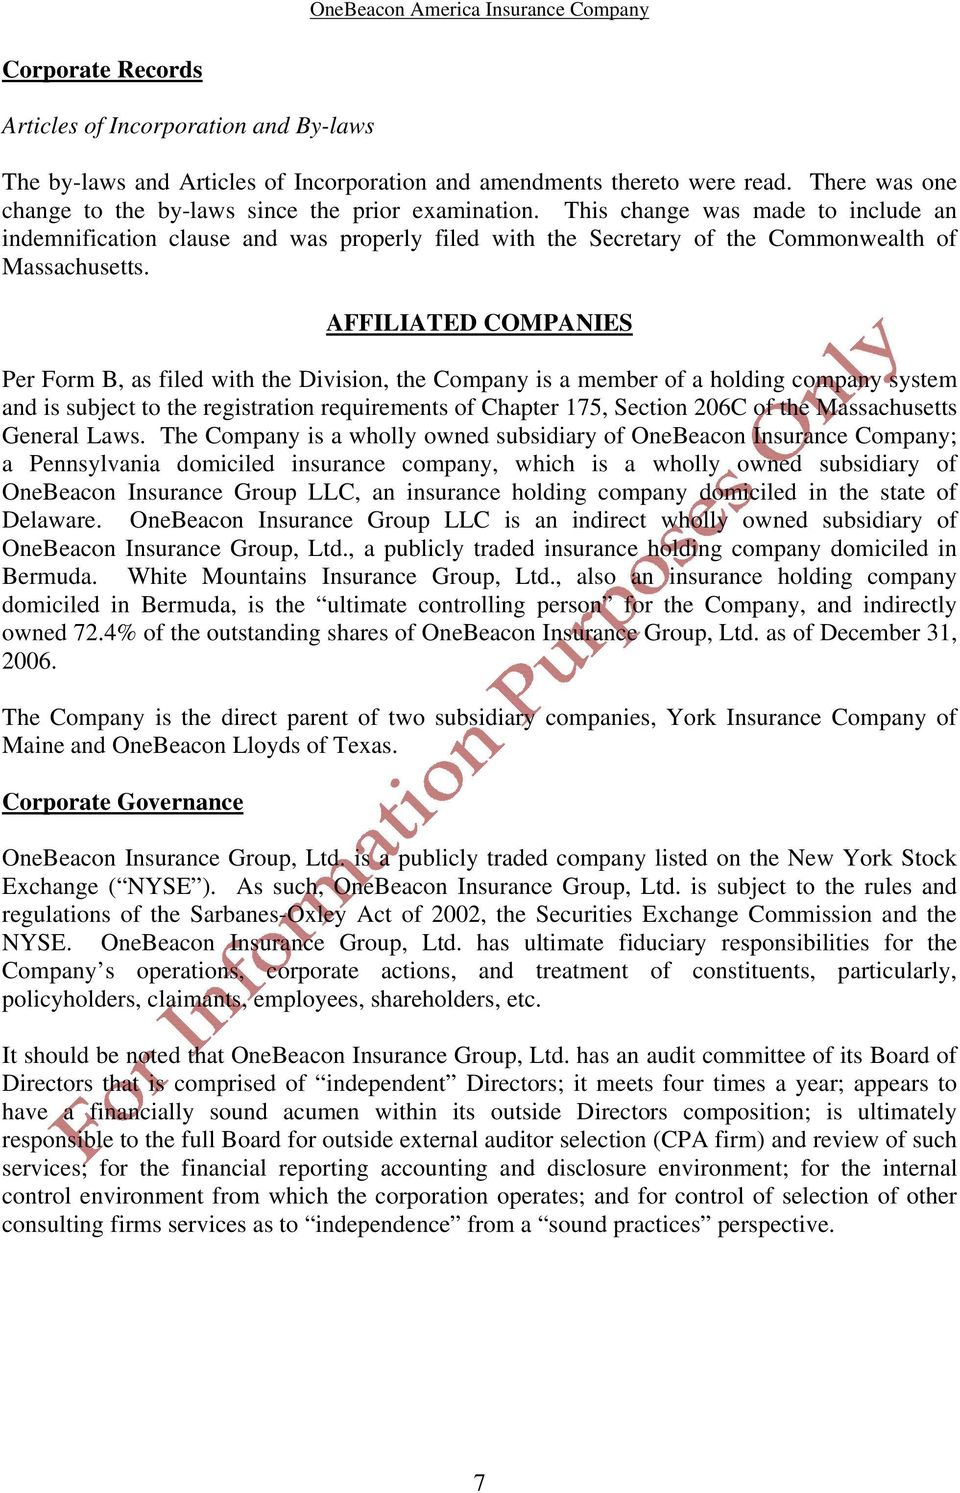 AFFILIATED COMPANIES Per Form B, as filed with the Division, the Company is a member of a holding company system and is subject to the registration requirements of Chapter 175, Section 206C of the